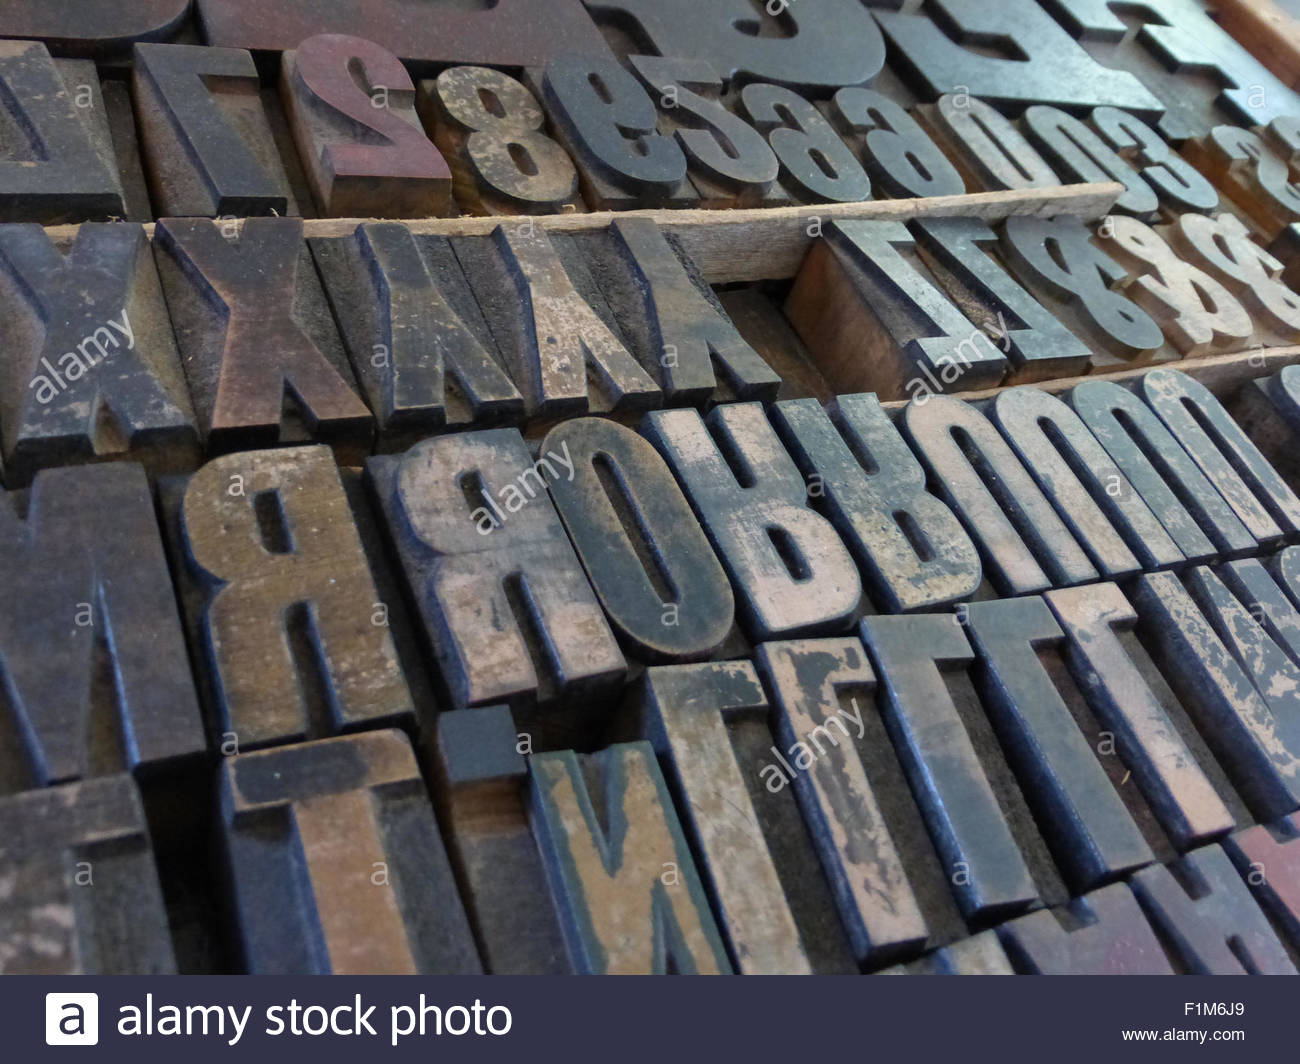 Medium Close up of large metal movable type block letters, used in printing presses prior to the digital age. - Stock Image